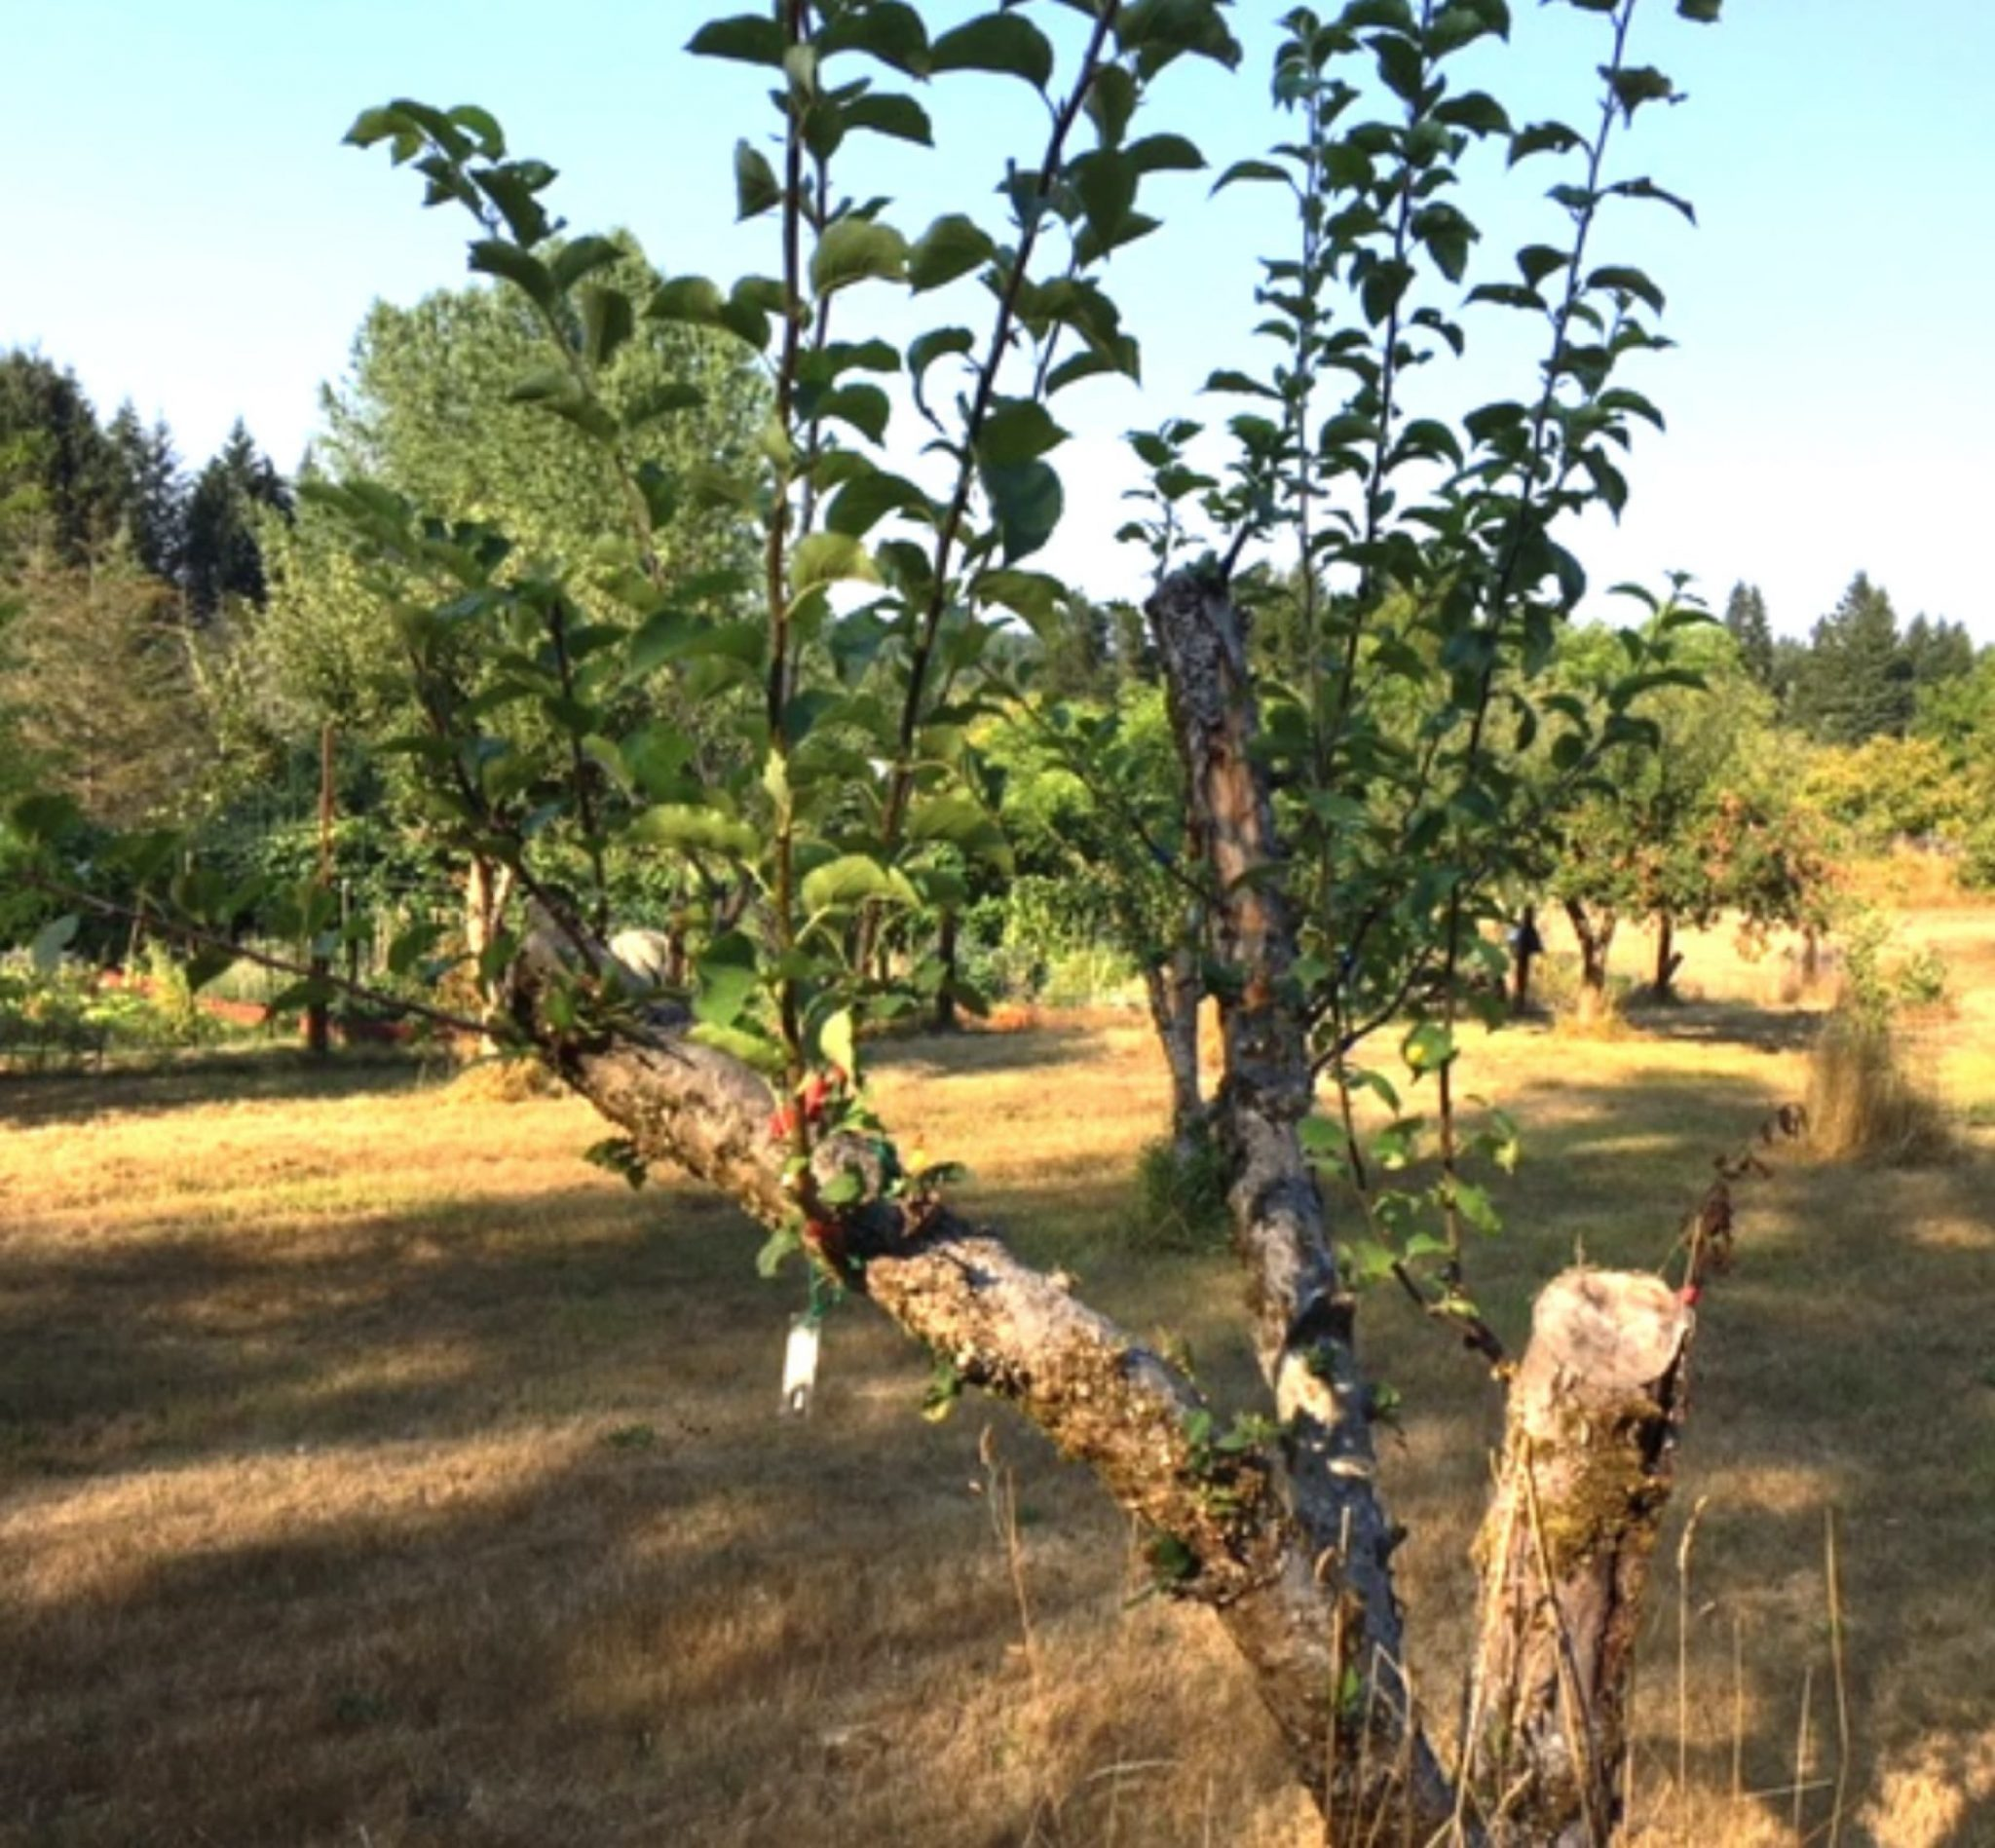 An apple tree sprouts new growth at Johnson Farm, where the BIFC is helping to rehabilitate the orchard.